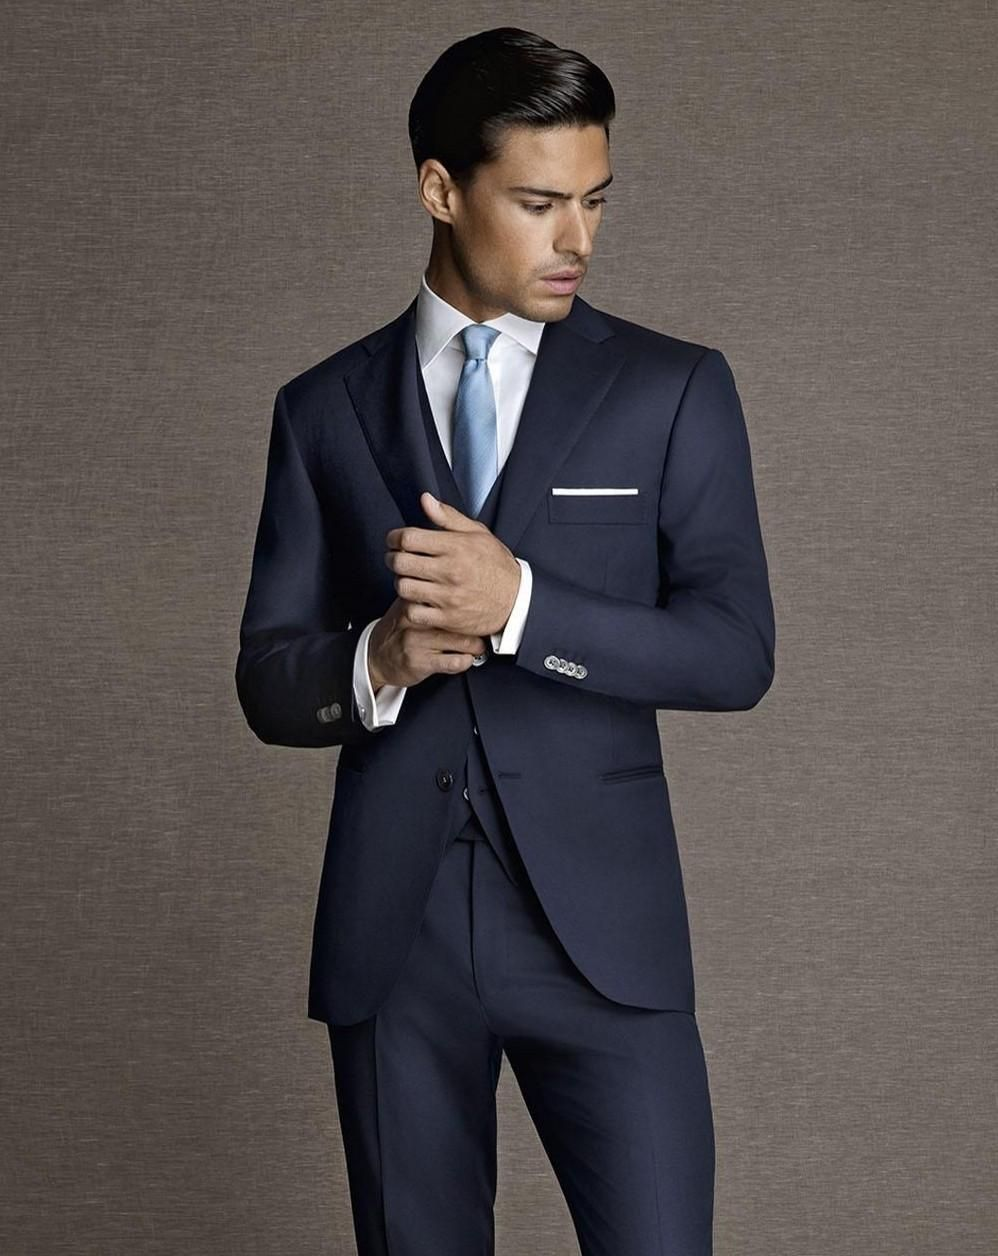 navy blue 3 piece - Google Search | jayds suits | Pinterest | Navy ...